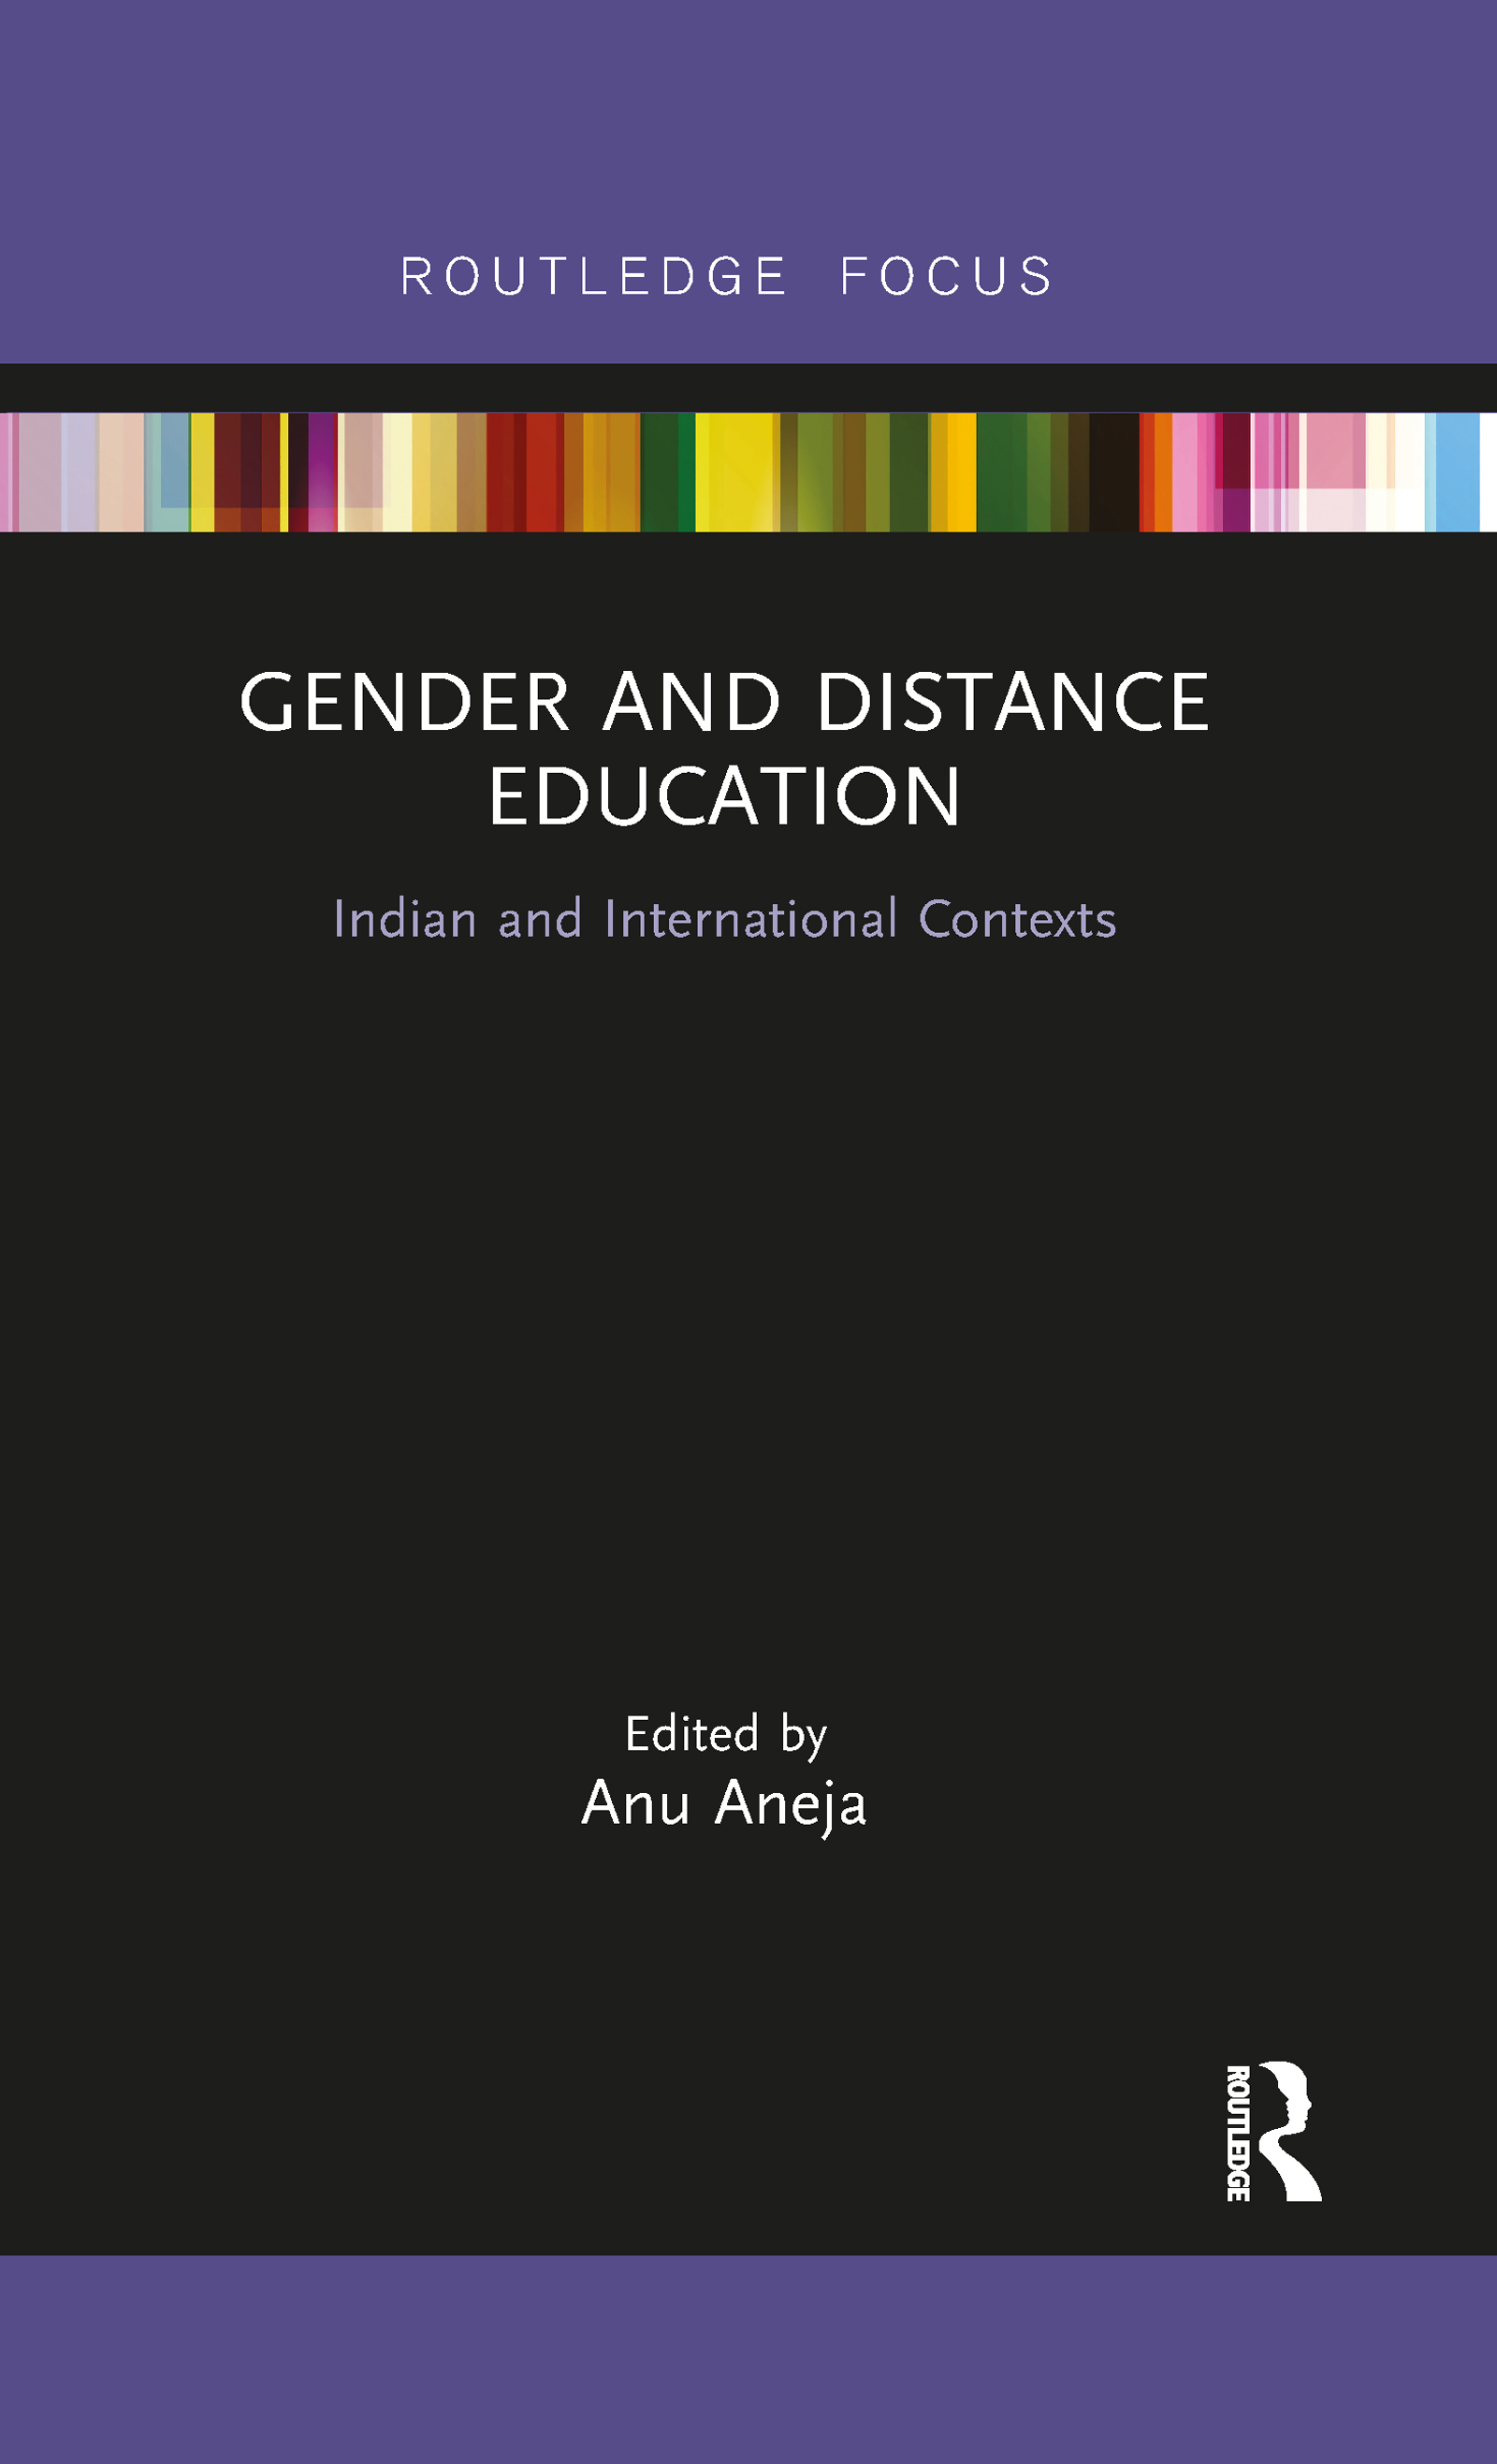 Gender and Distance Education